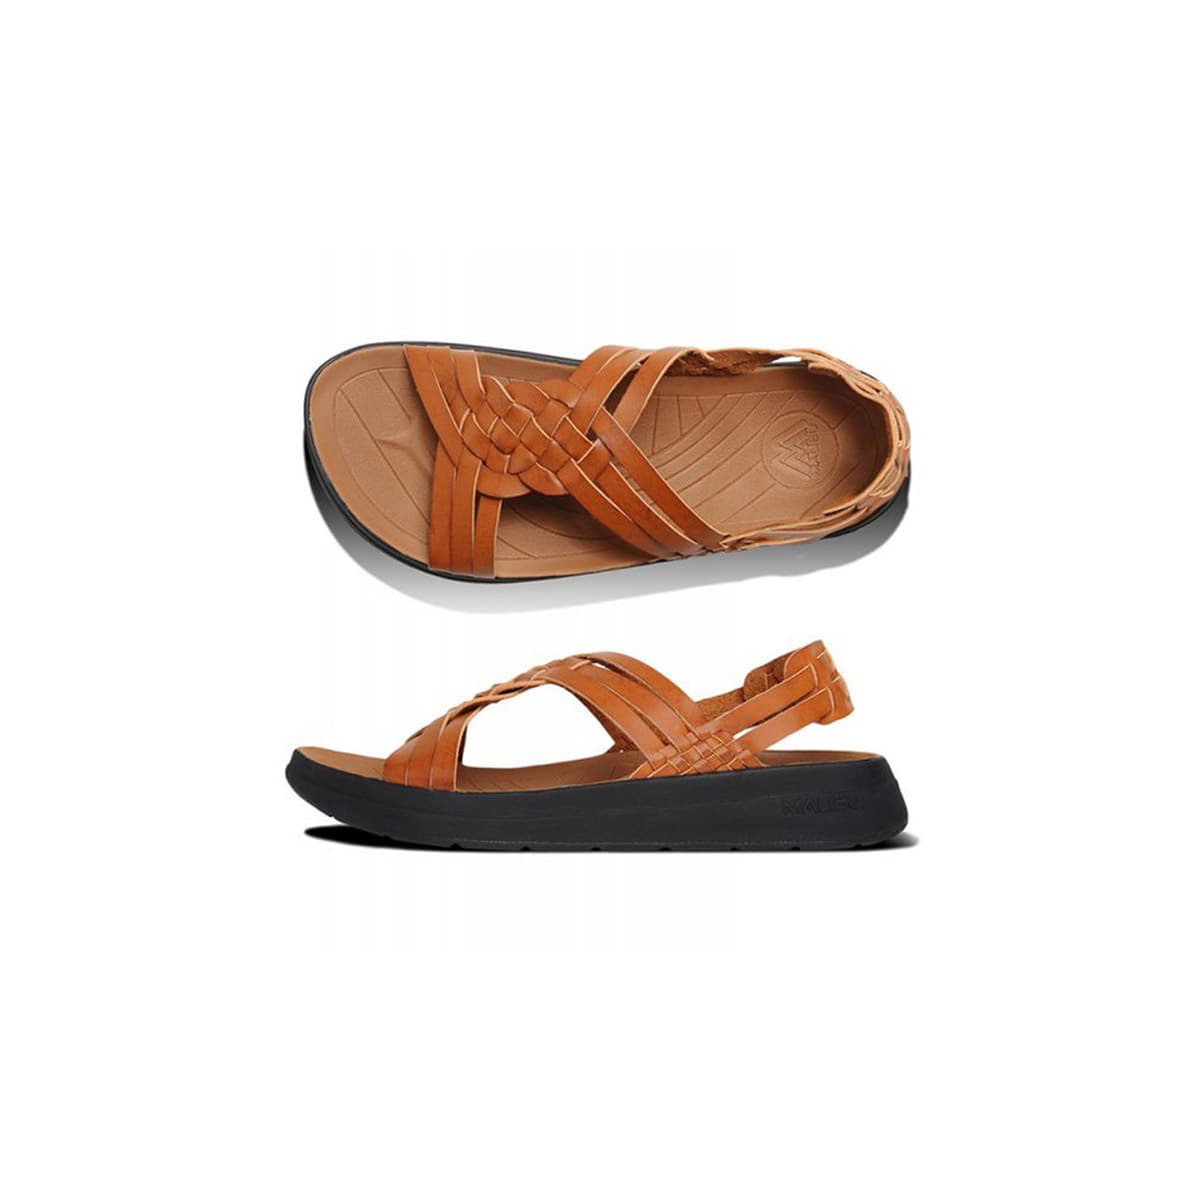 [MALIBU SANDALS] TRANCAS 'WHISKEY'